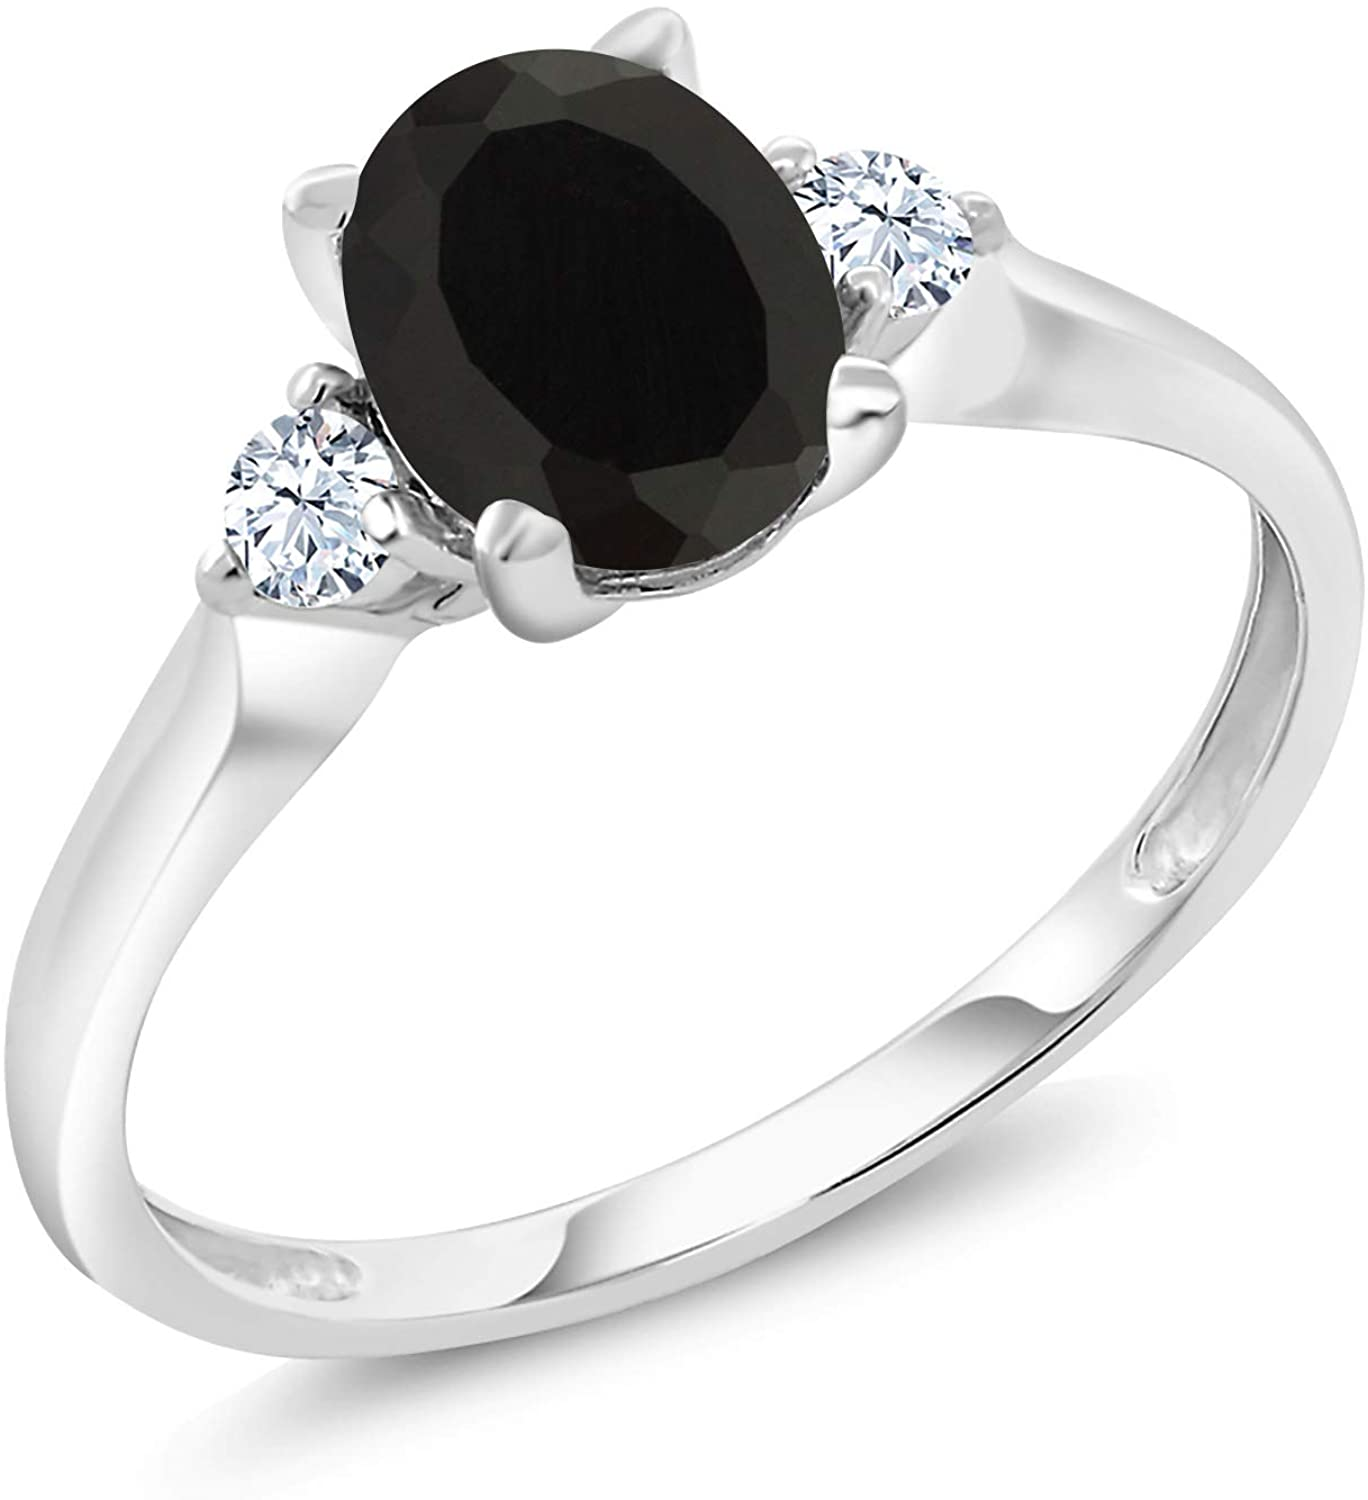 Gem Stone King 10K White Gold Black Onyx and White Created Sapphire 3-Stone Women's Engagement Ring 1.35 Ctw (Available 5,6,7,8,9)